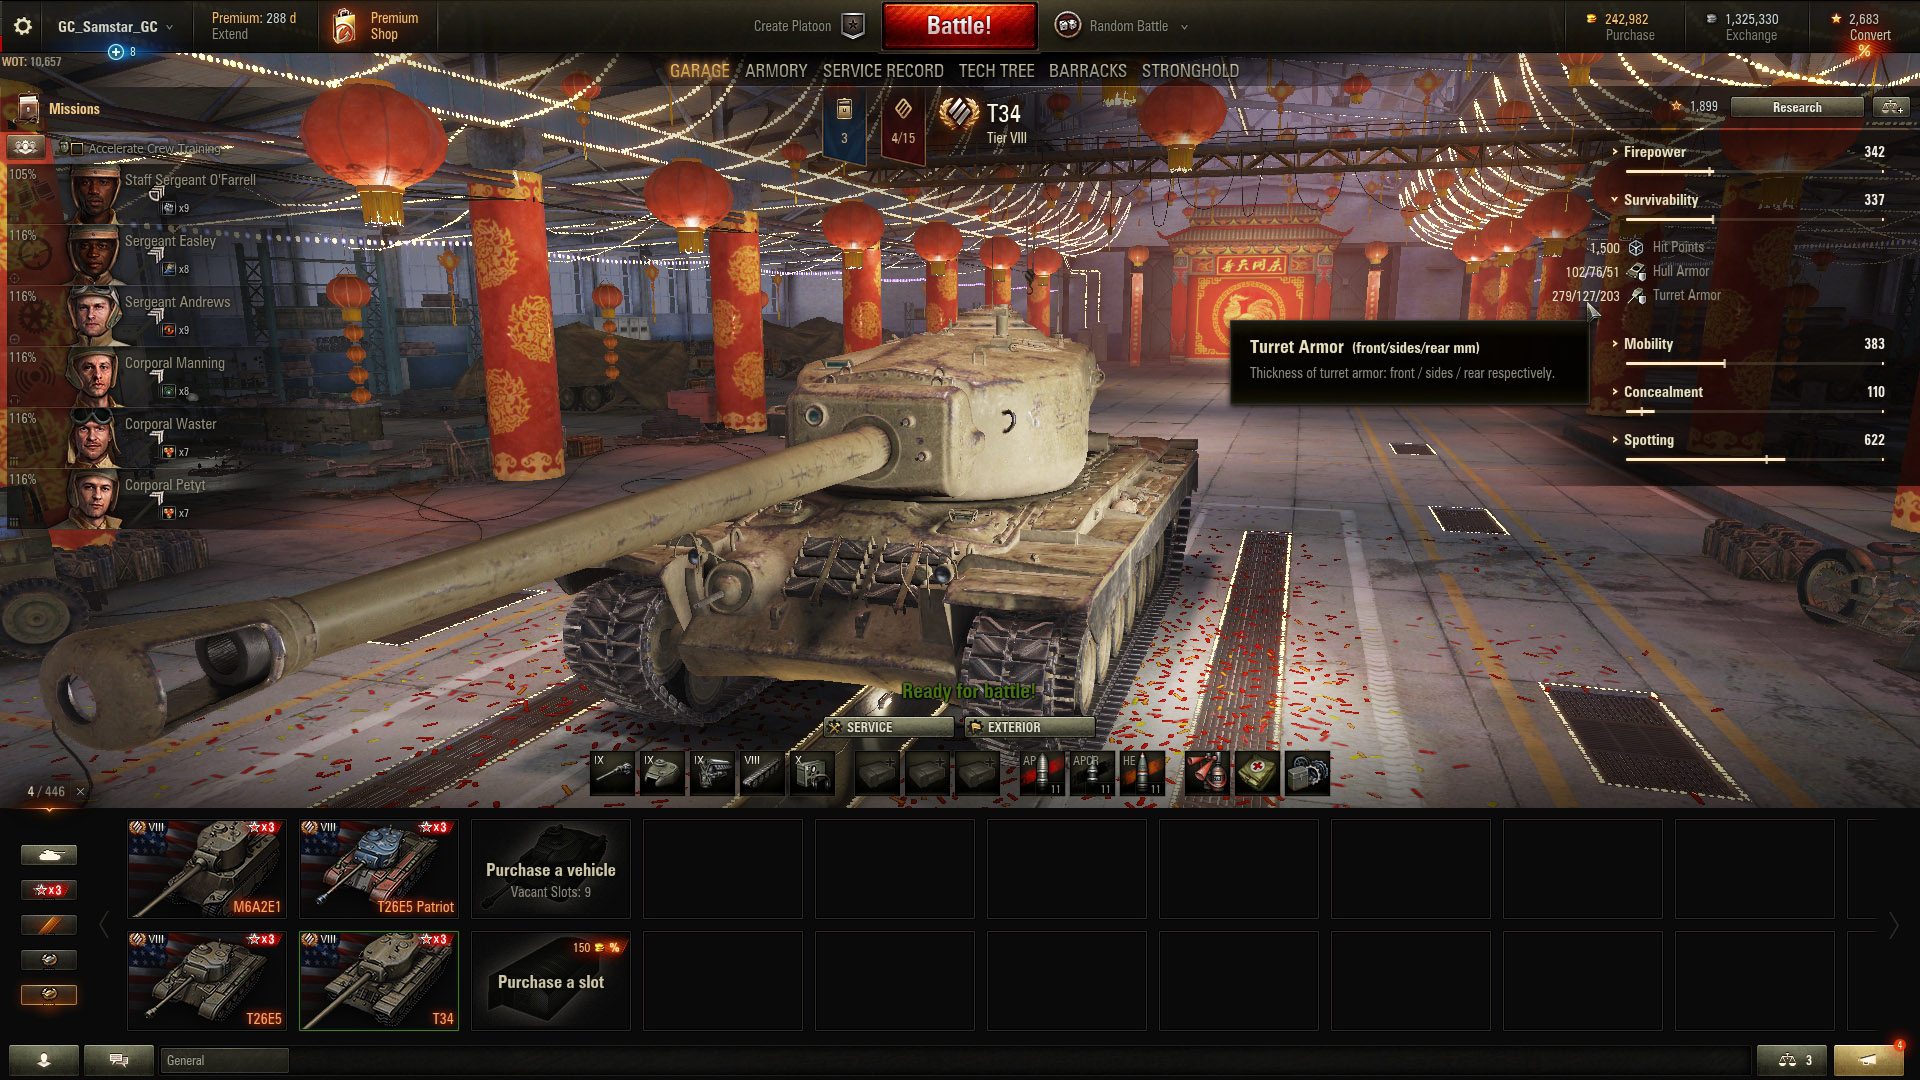 The T34 has stronger turret armor than hull armor, making a hull down position an ideal strategy.